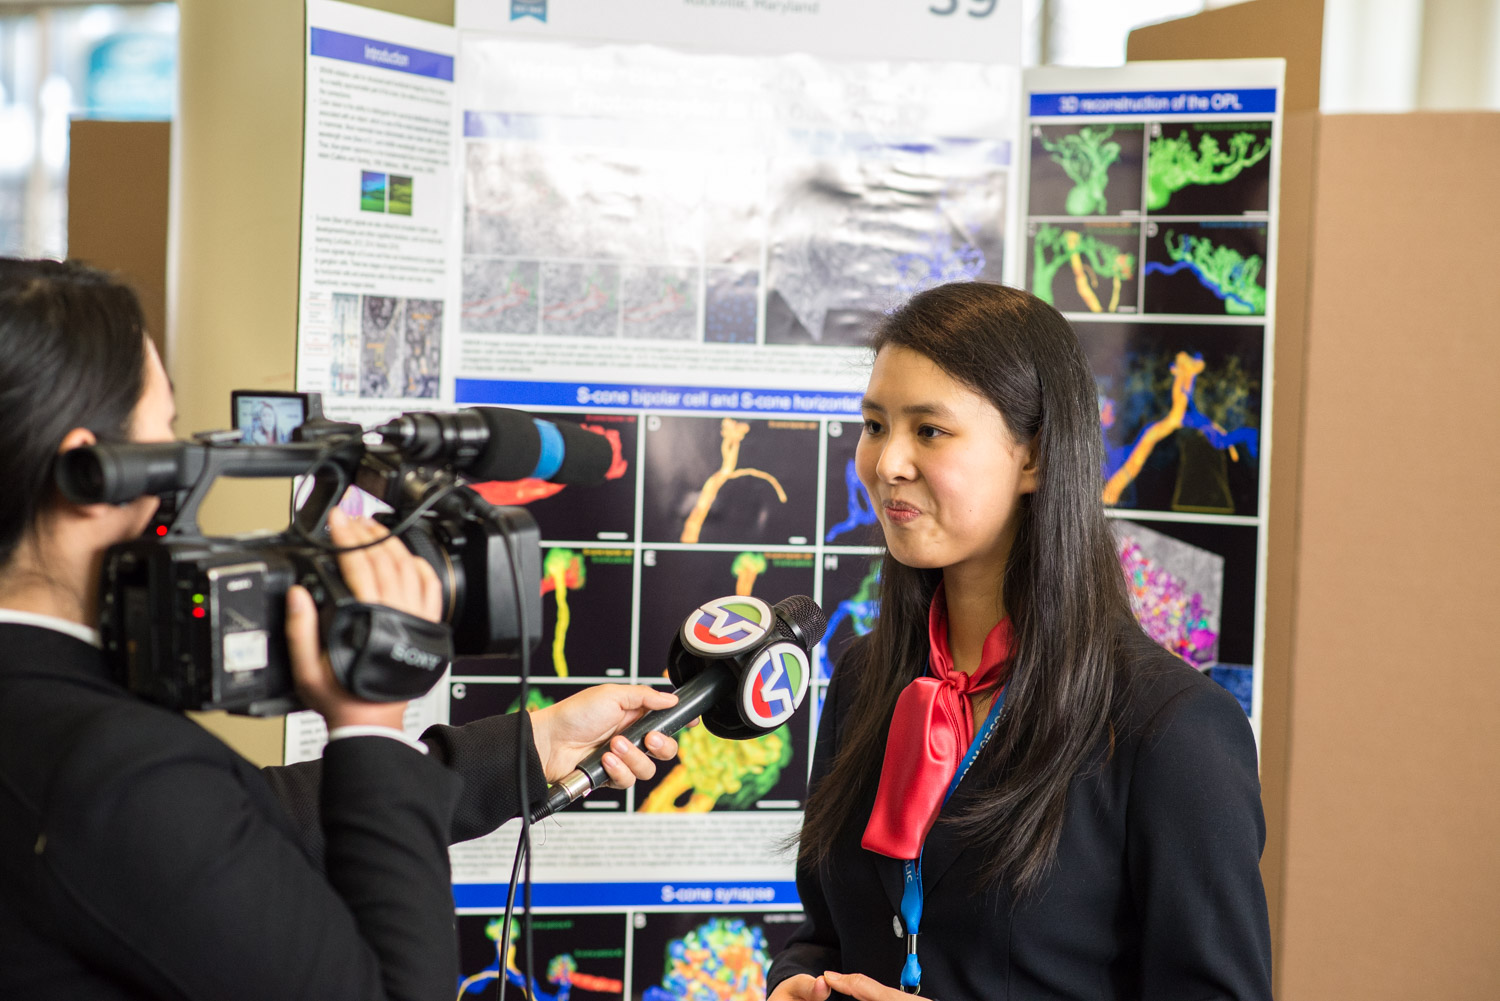 Throughout the afternoon, the finalists spoke with the media about their impressive research.